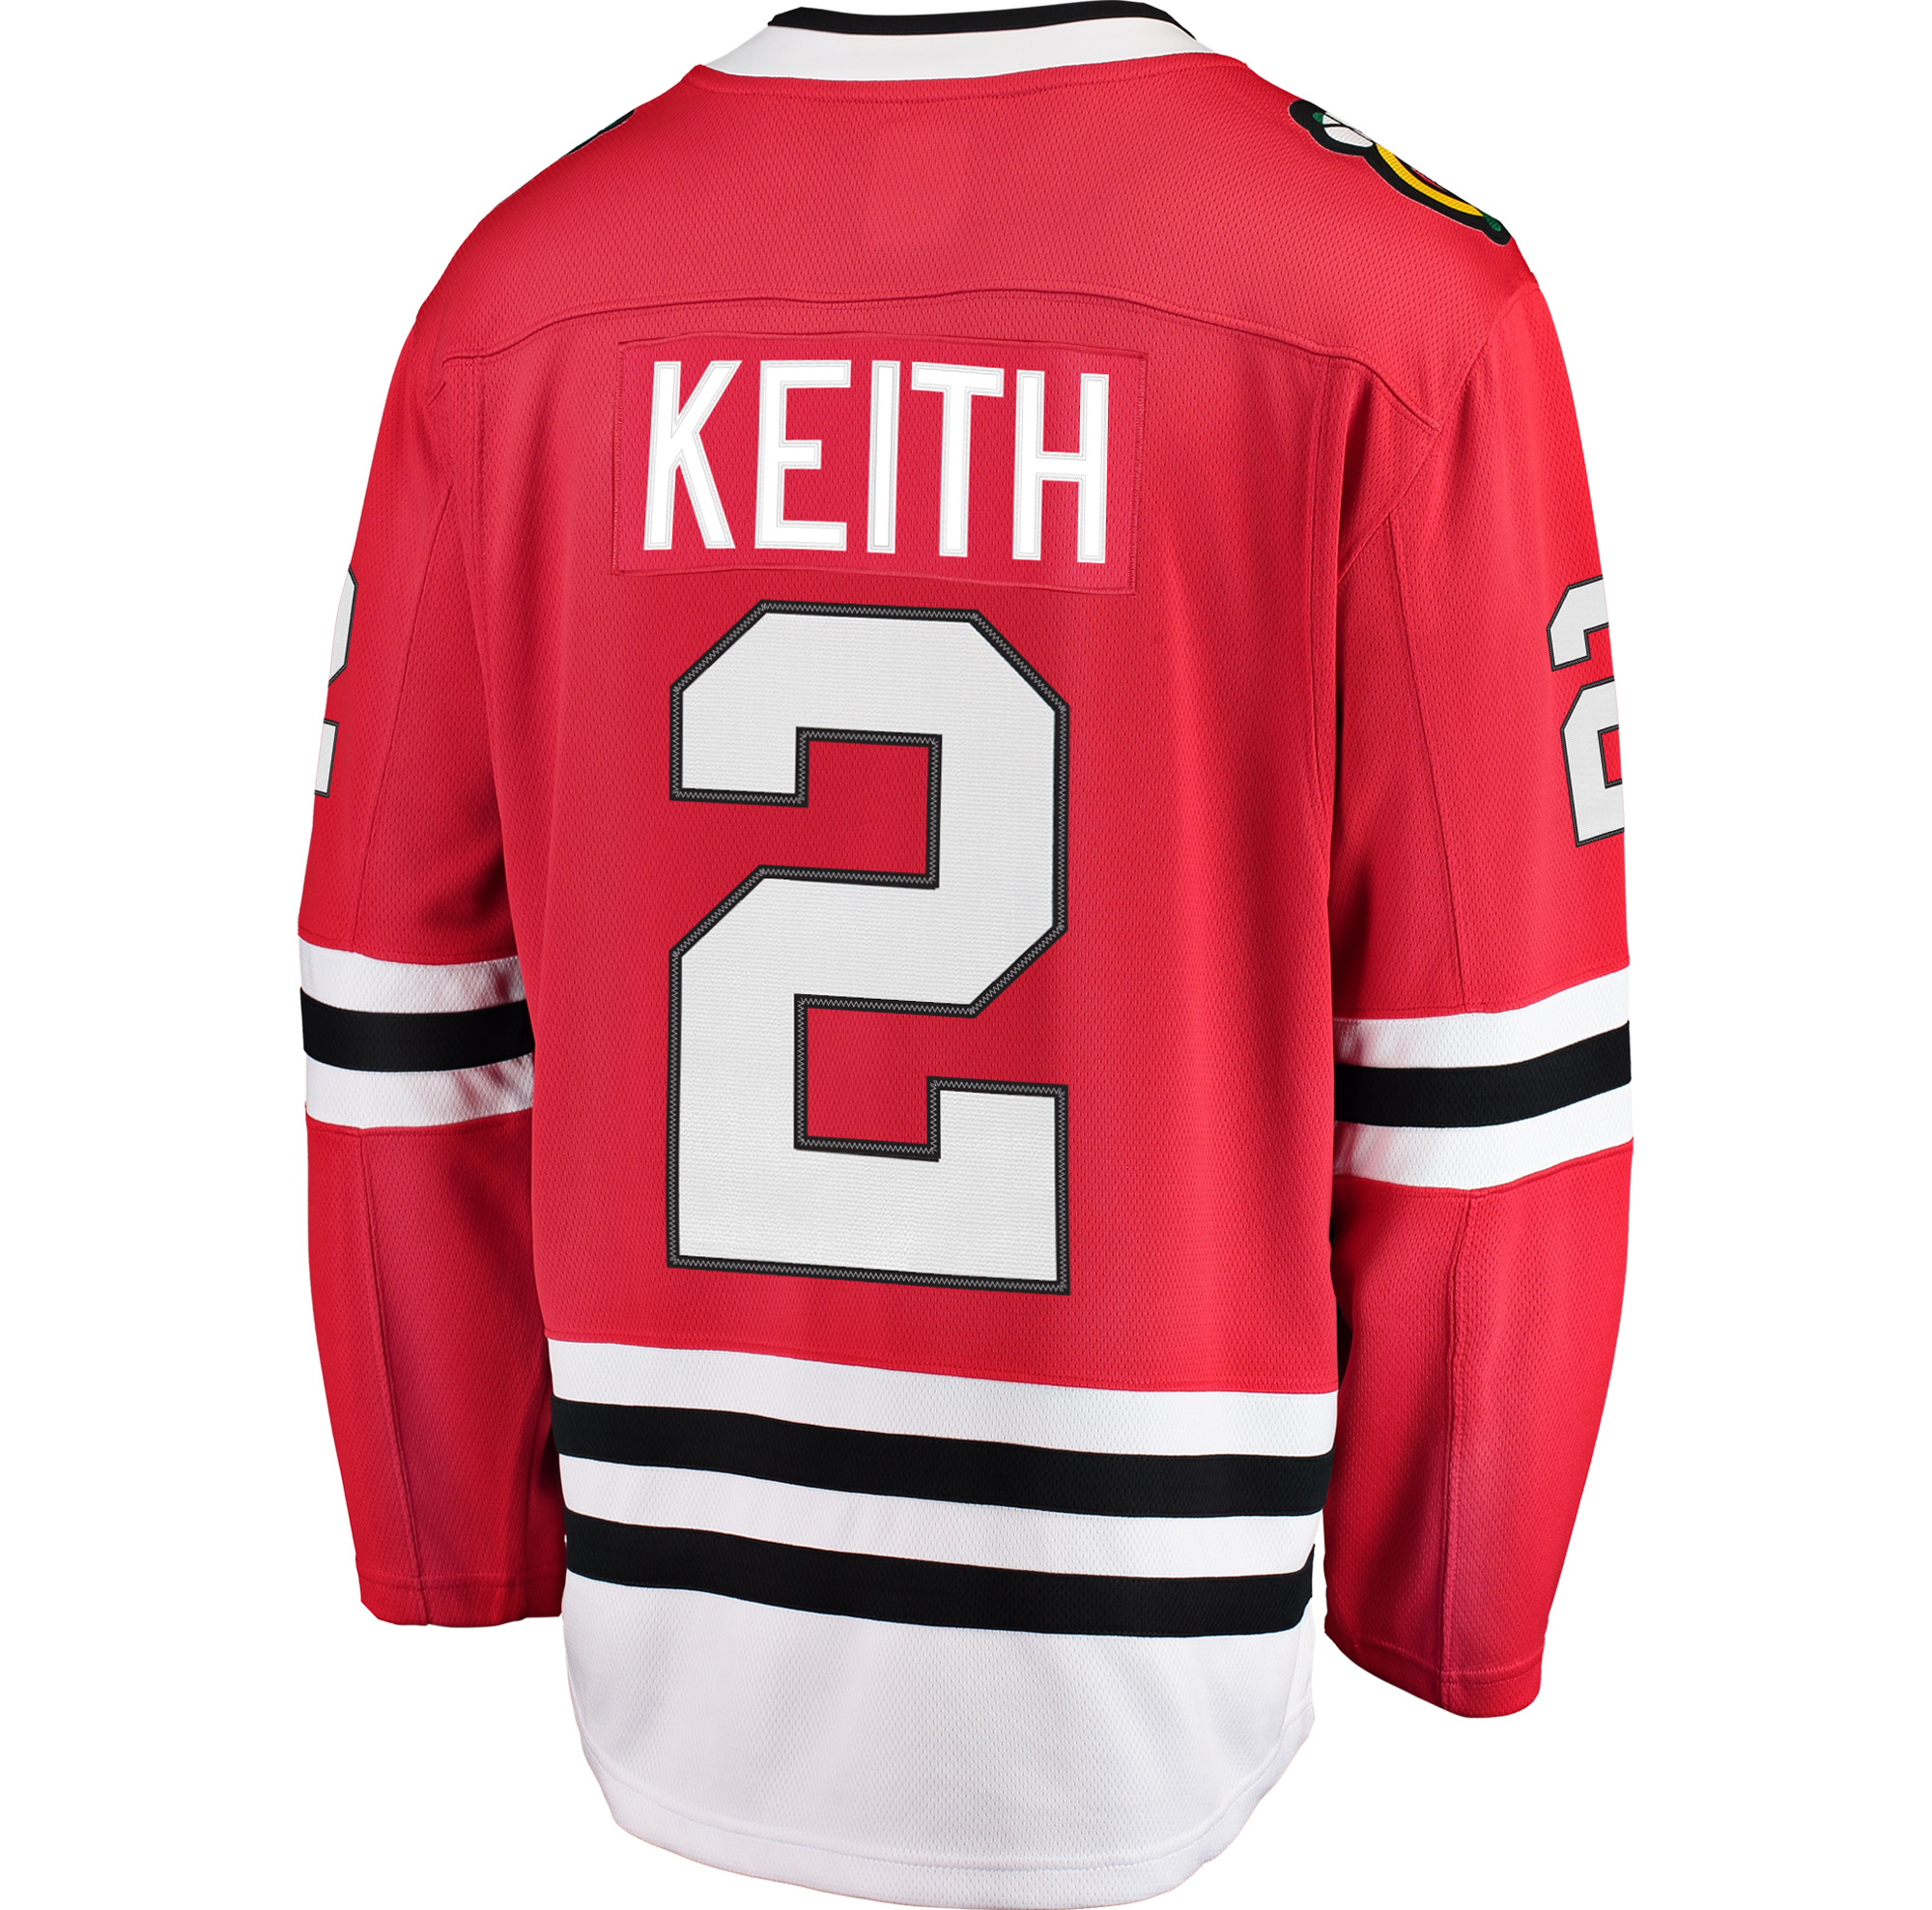 cb7ef2dbf68 ... usa b6062 0e3cd duncan keith chicago blackhawks fanatics branded  breakaway player jersey red walmart. bf1e0